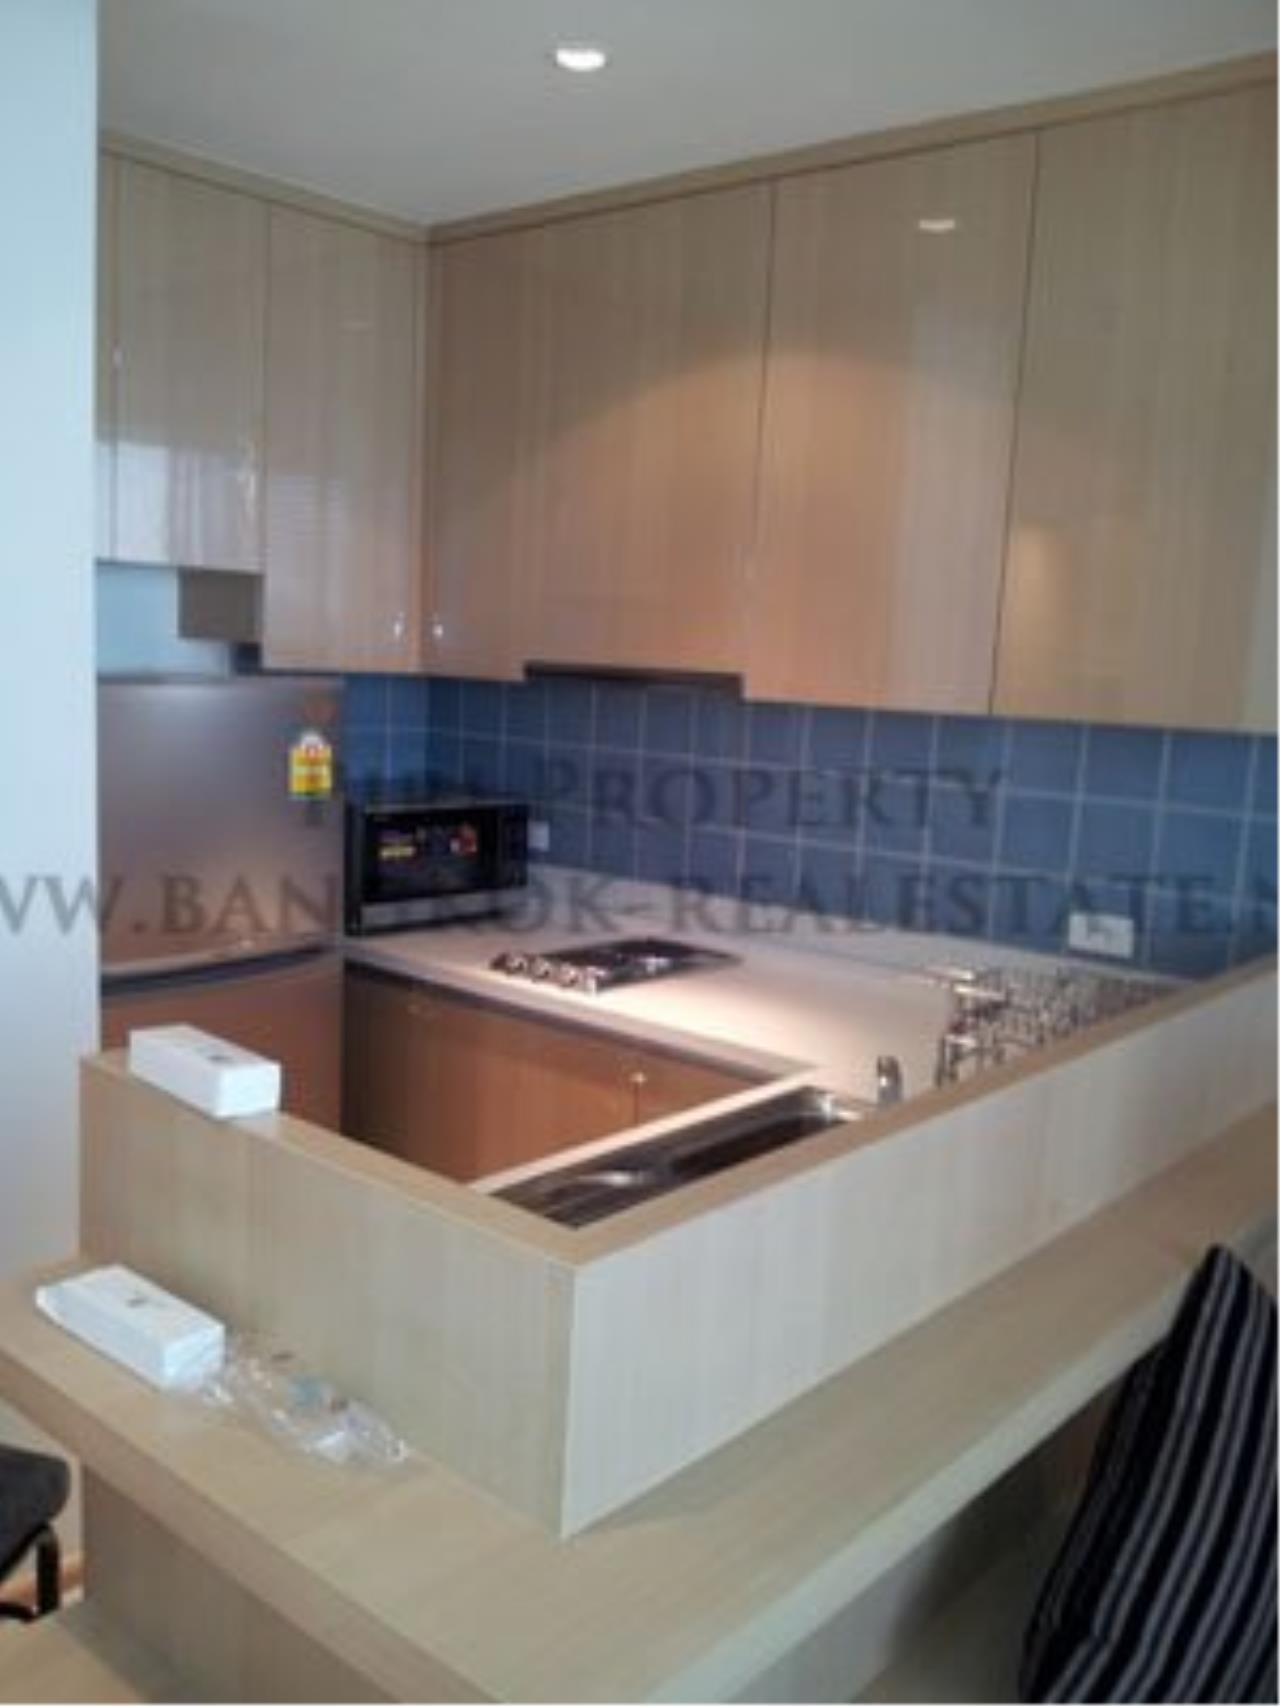 Piri Property Agency's Living on the 40th Floor - Villa Ratchatewi - 1 BR for rent 6